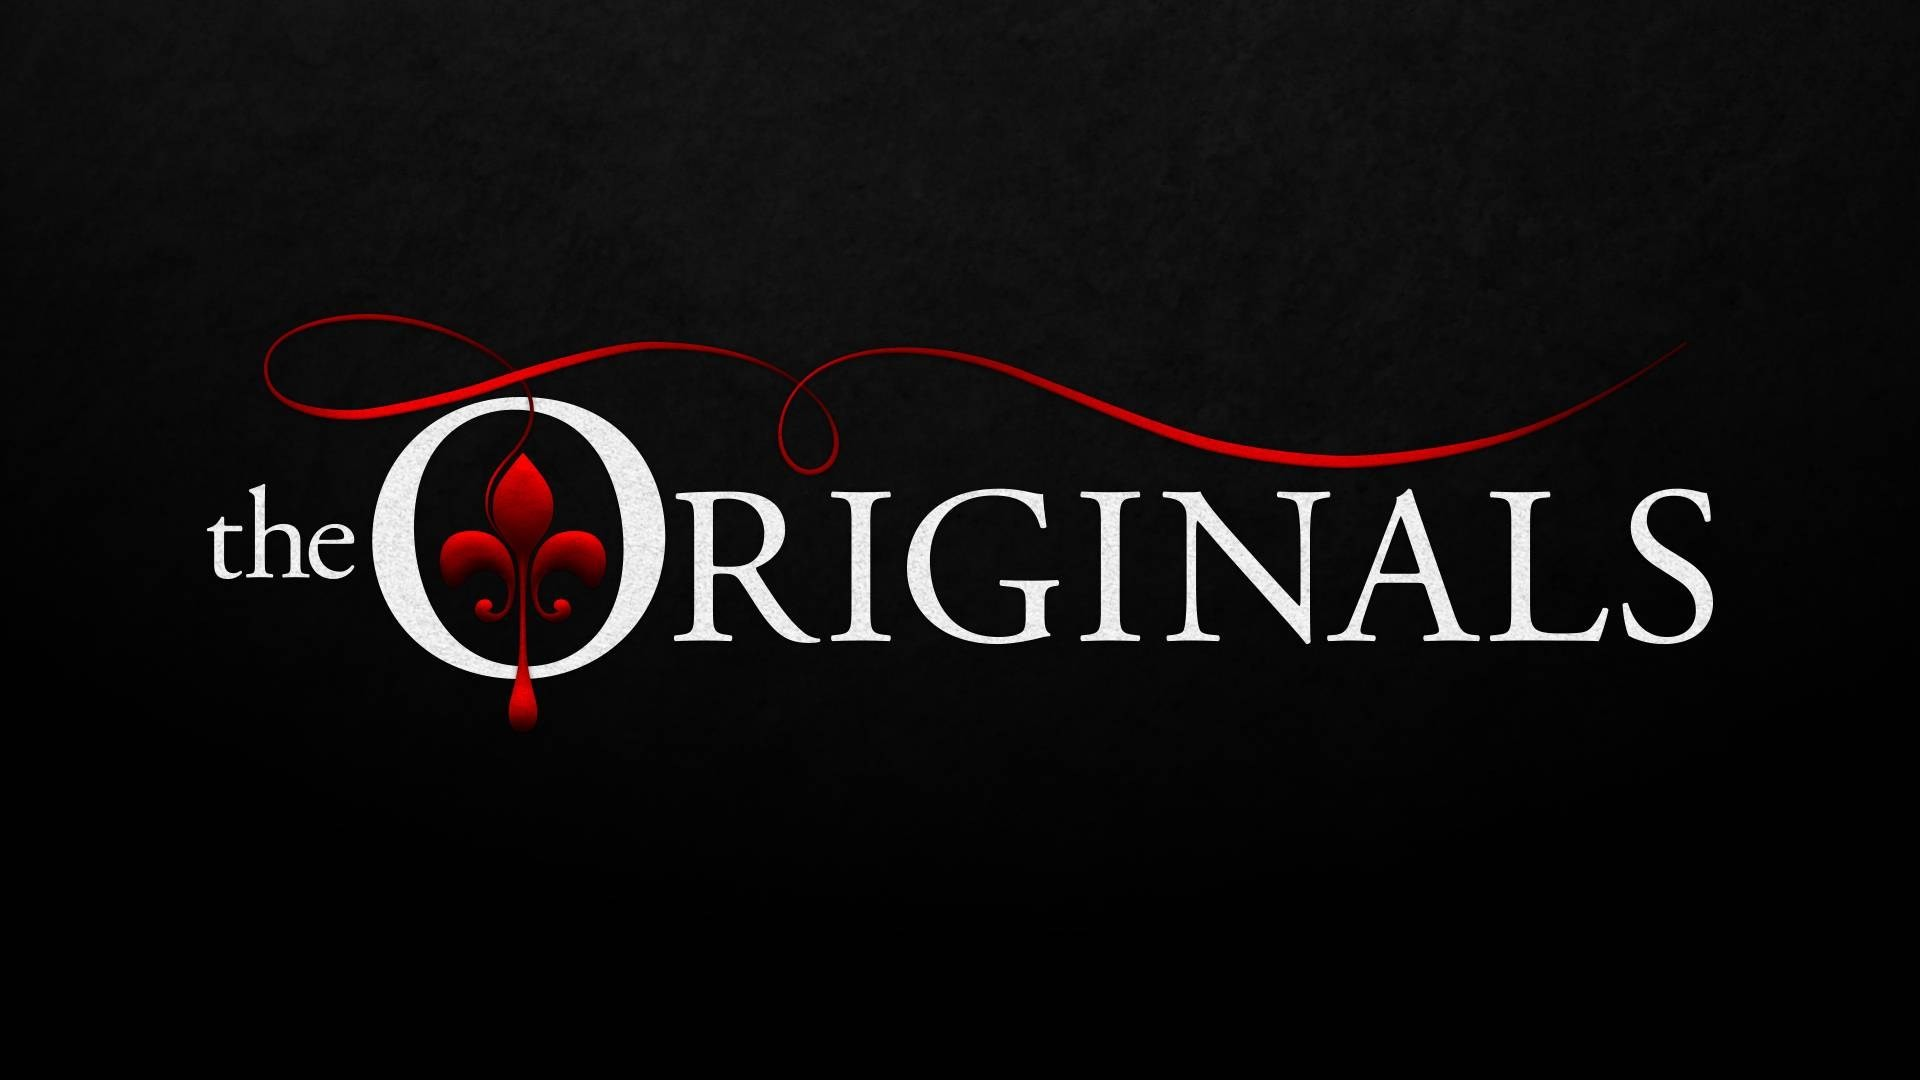 1920x1080  px the originals wallpaper free for desktop by Jenoah Chester